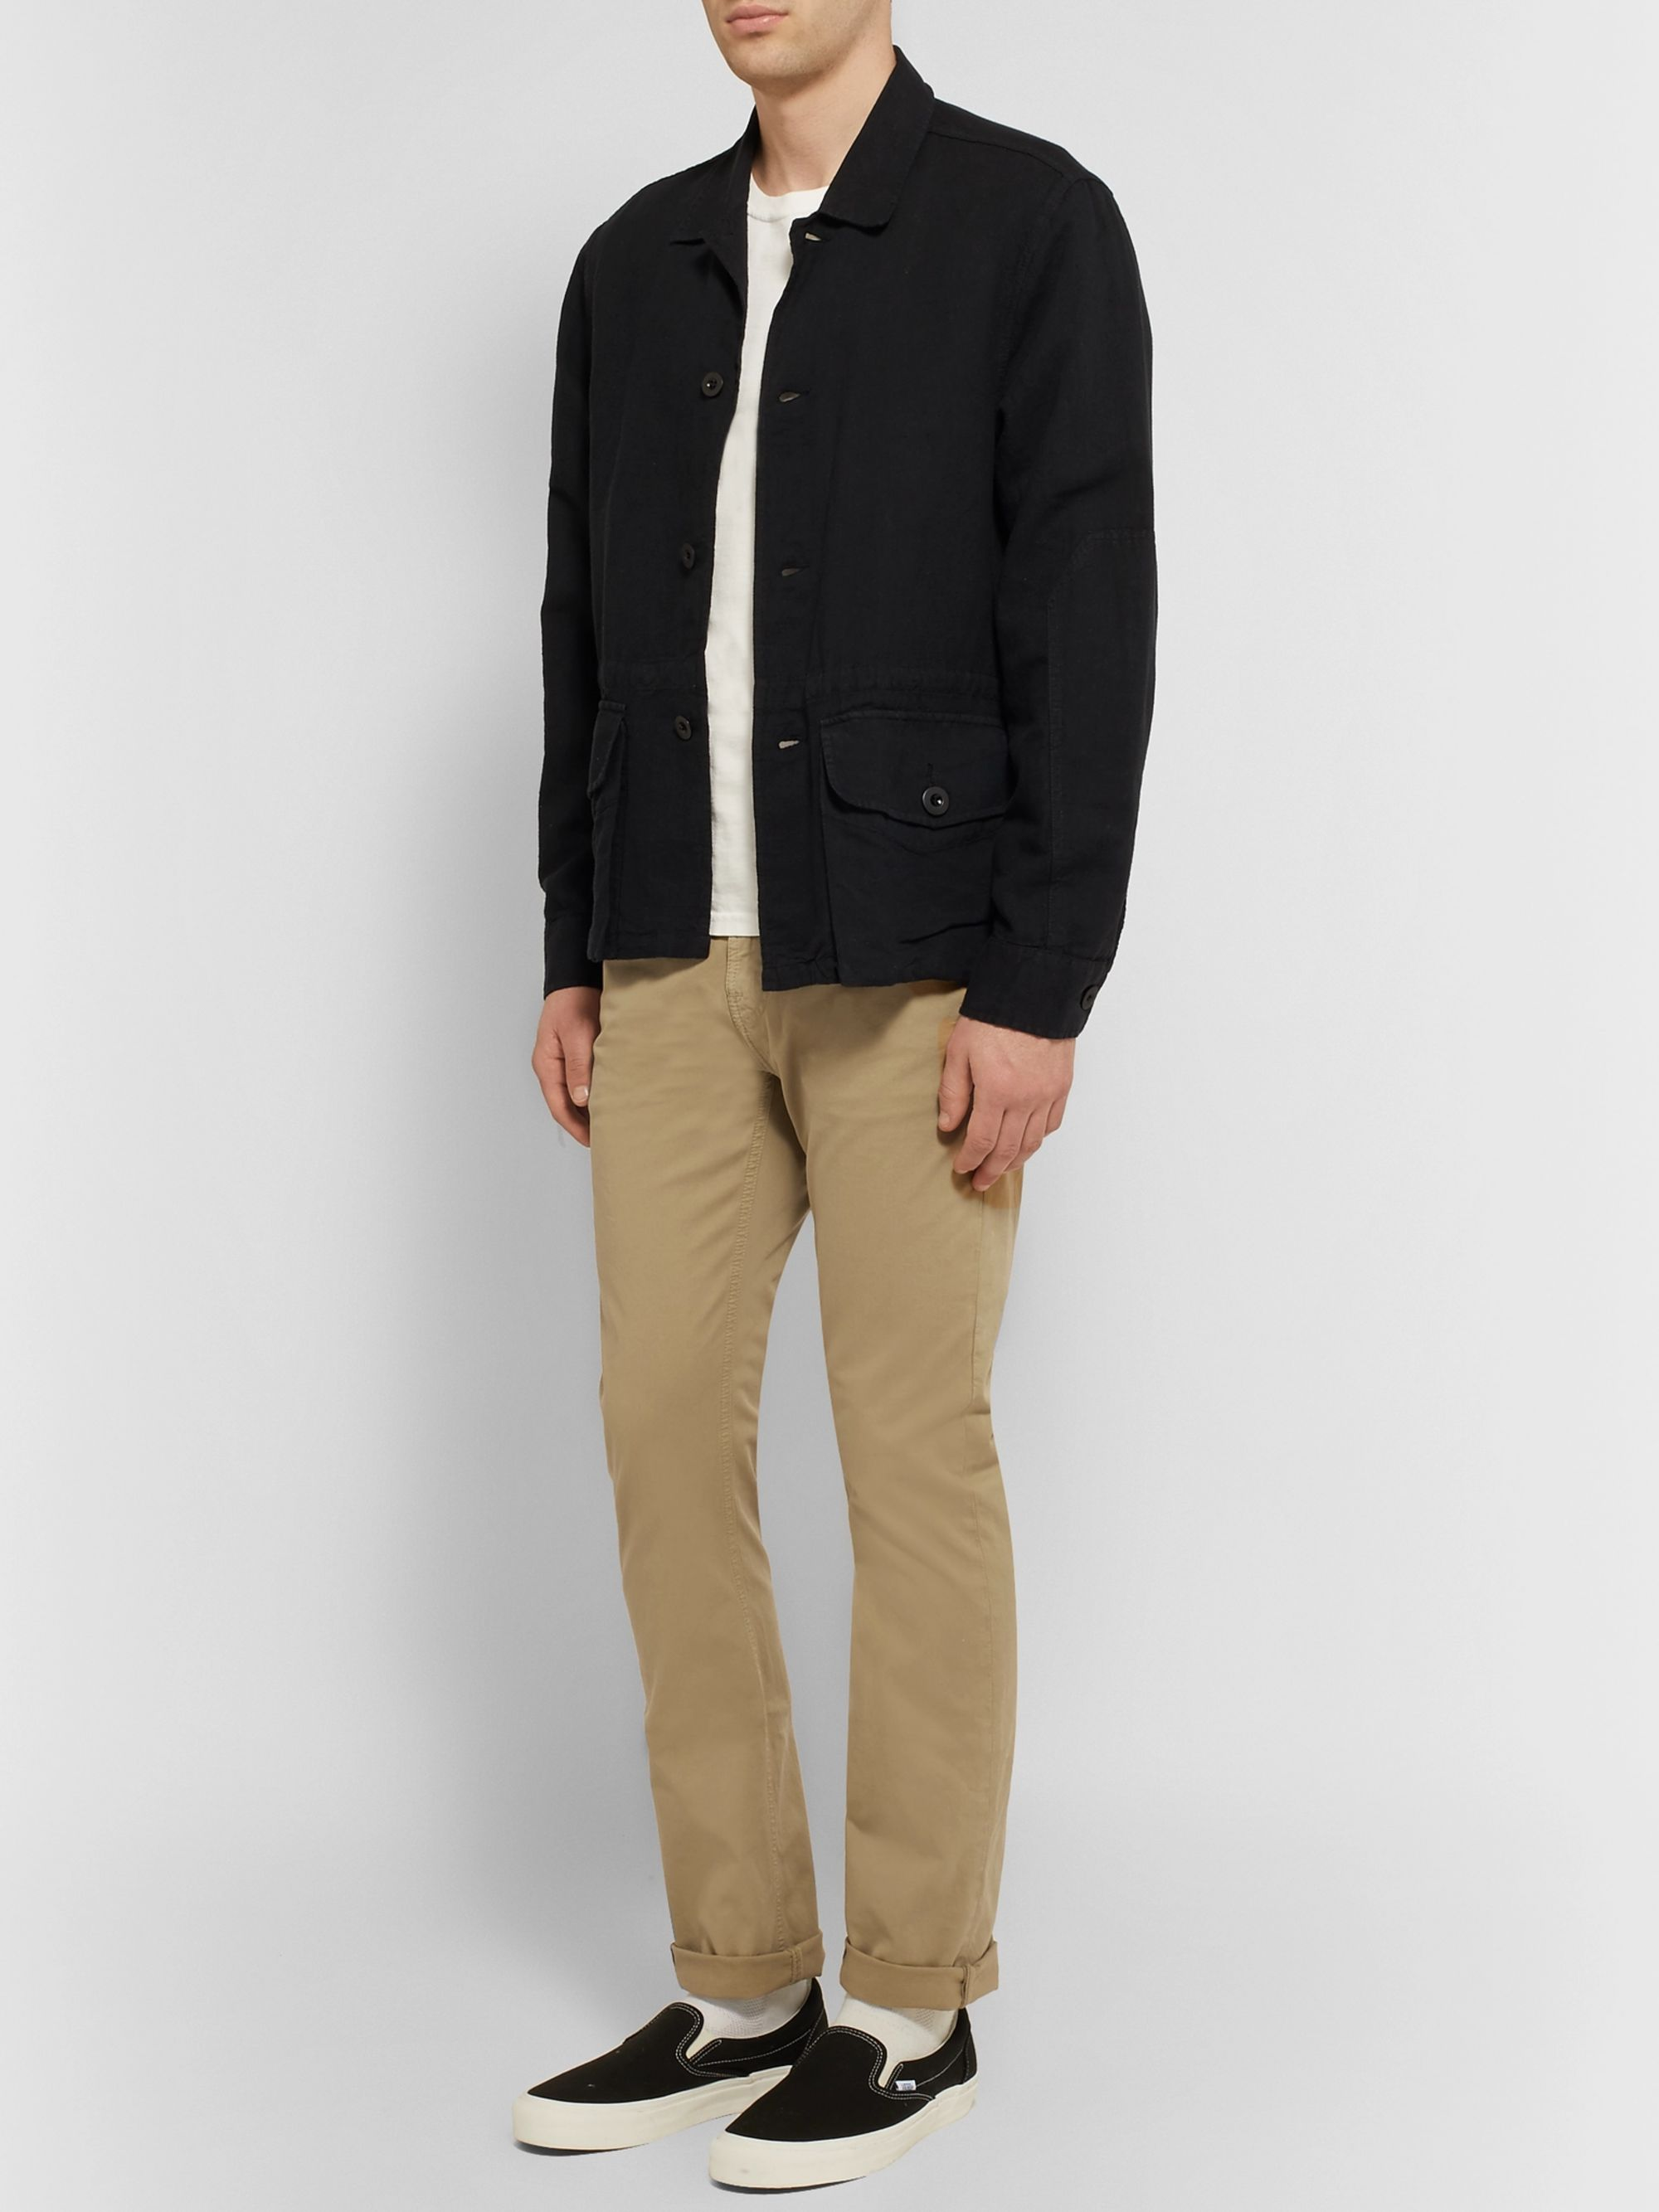 Nudie Jeans Slim Adam Garment-Dyed Stretch-Cotton Twill Trousers